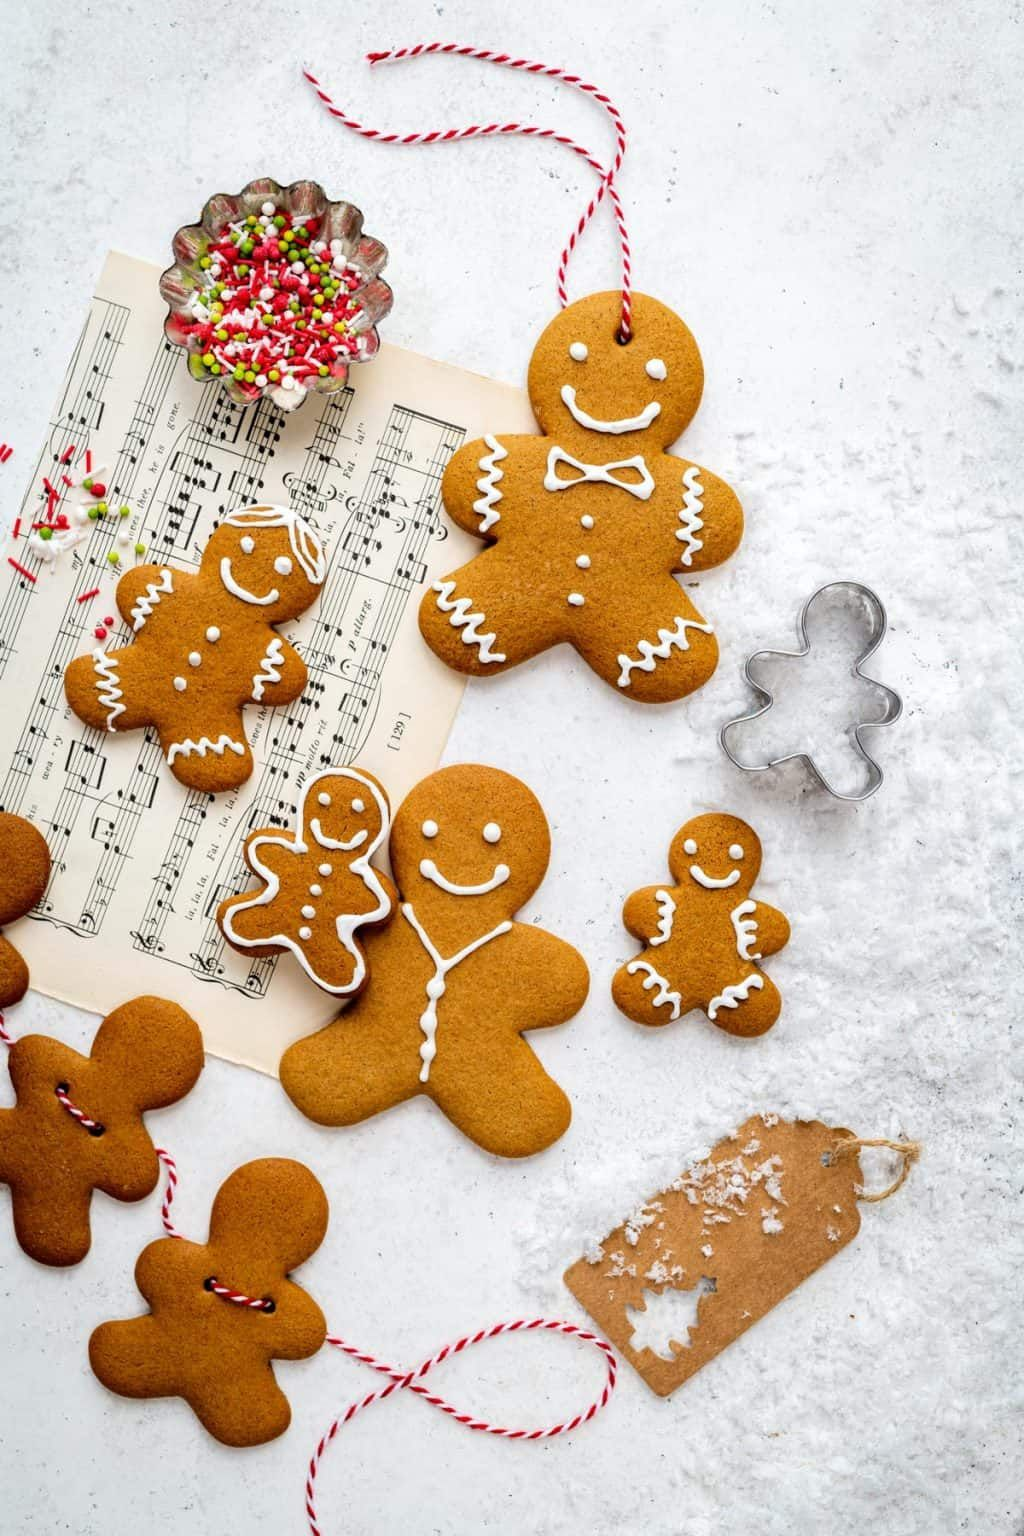 This gingerbread cookie recipe is SO easy to make all in